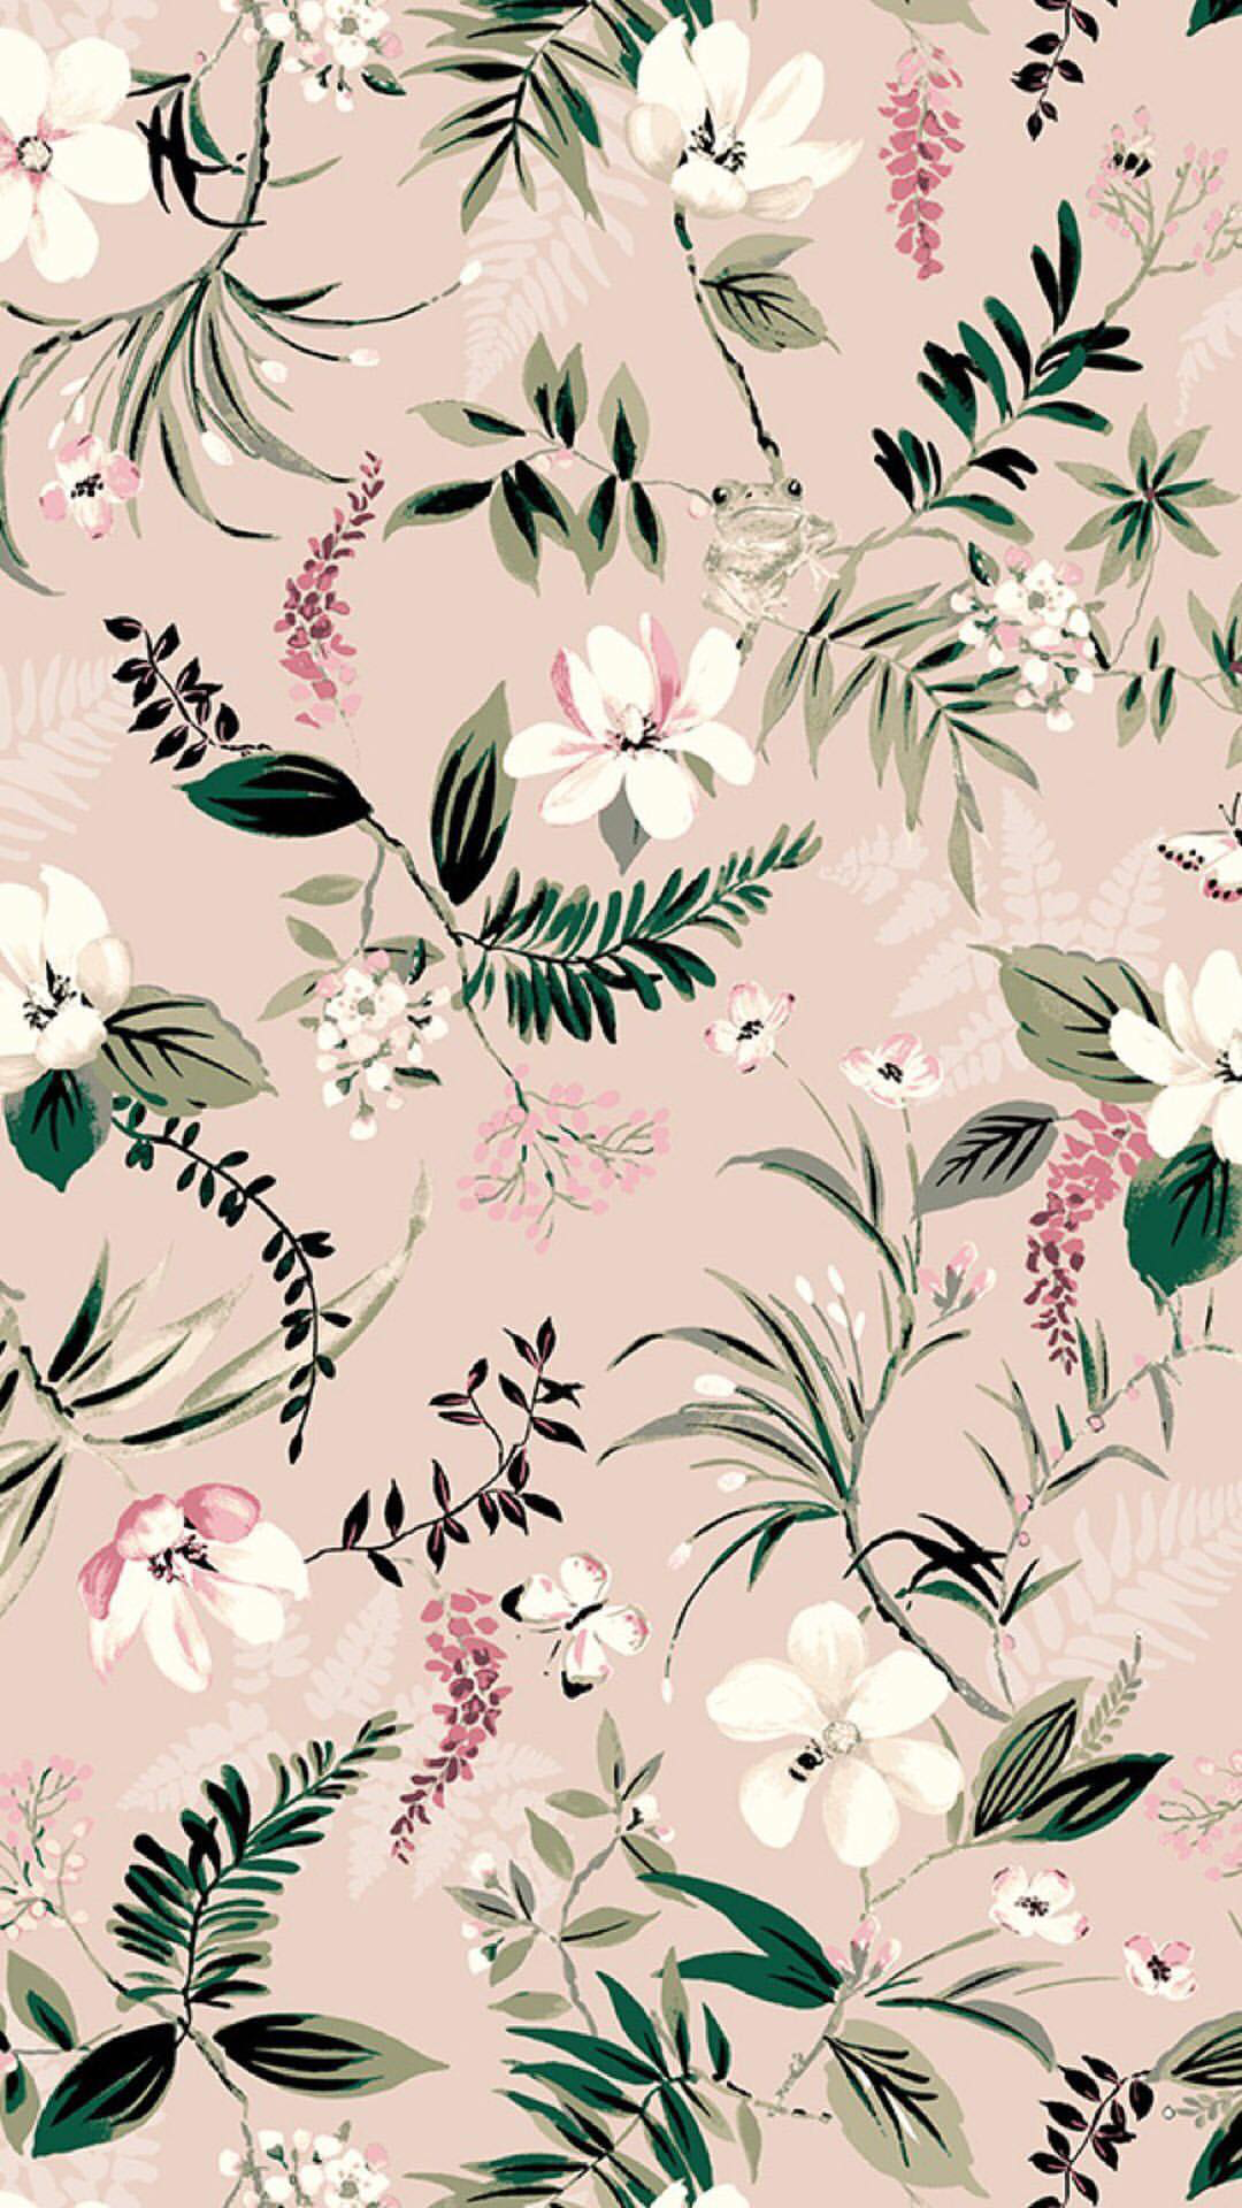 Phone Background Floral Wallpaper Kate Spade Wallpaper Flower